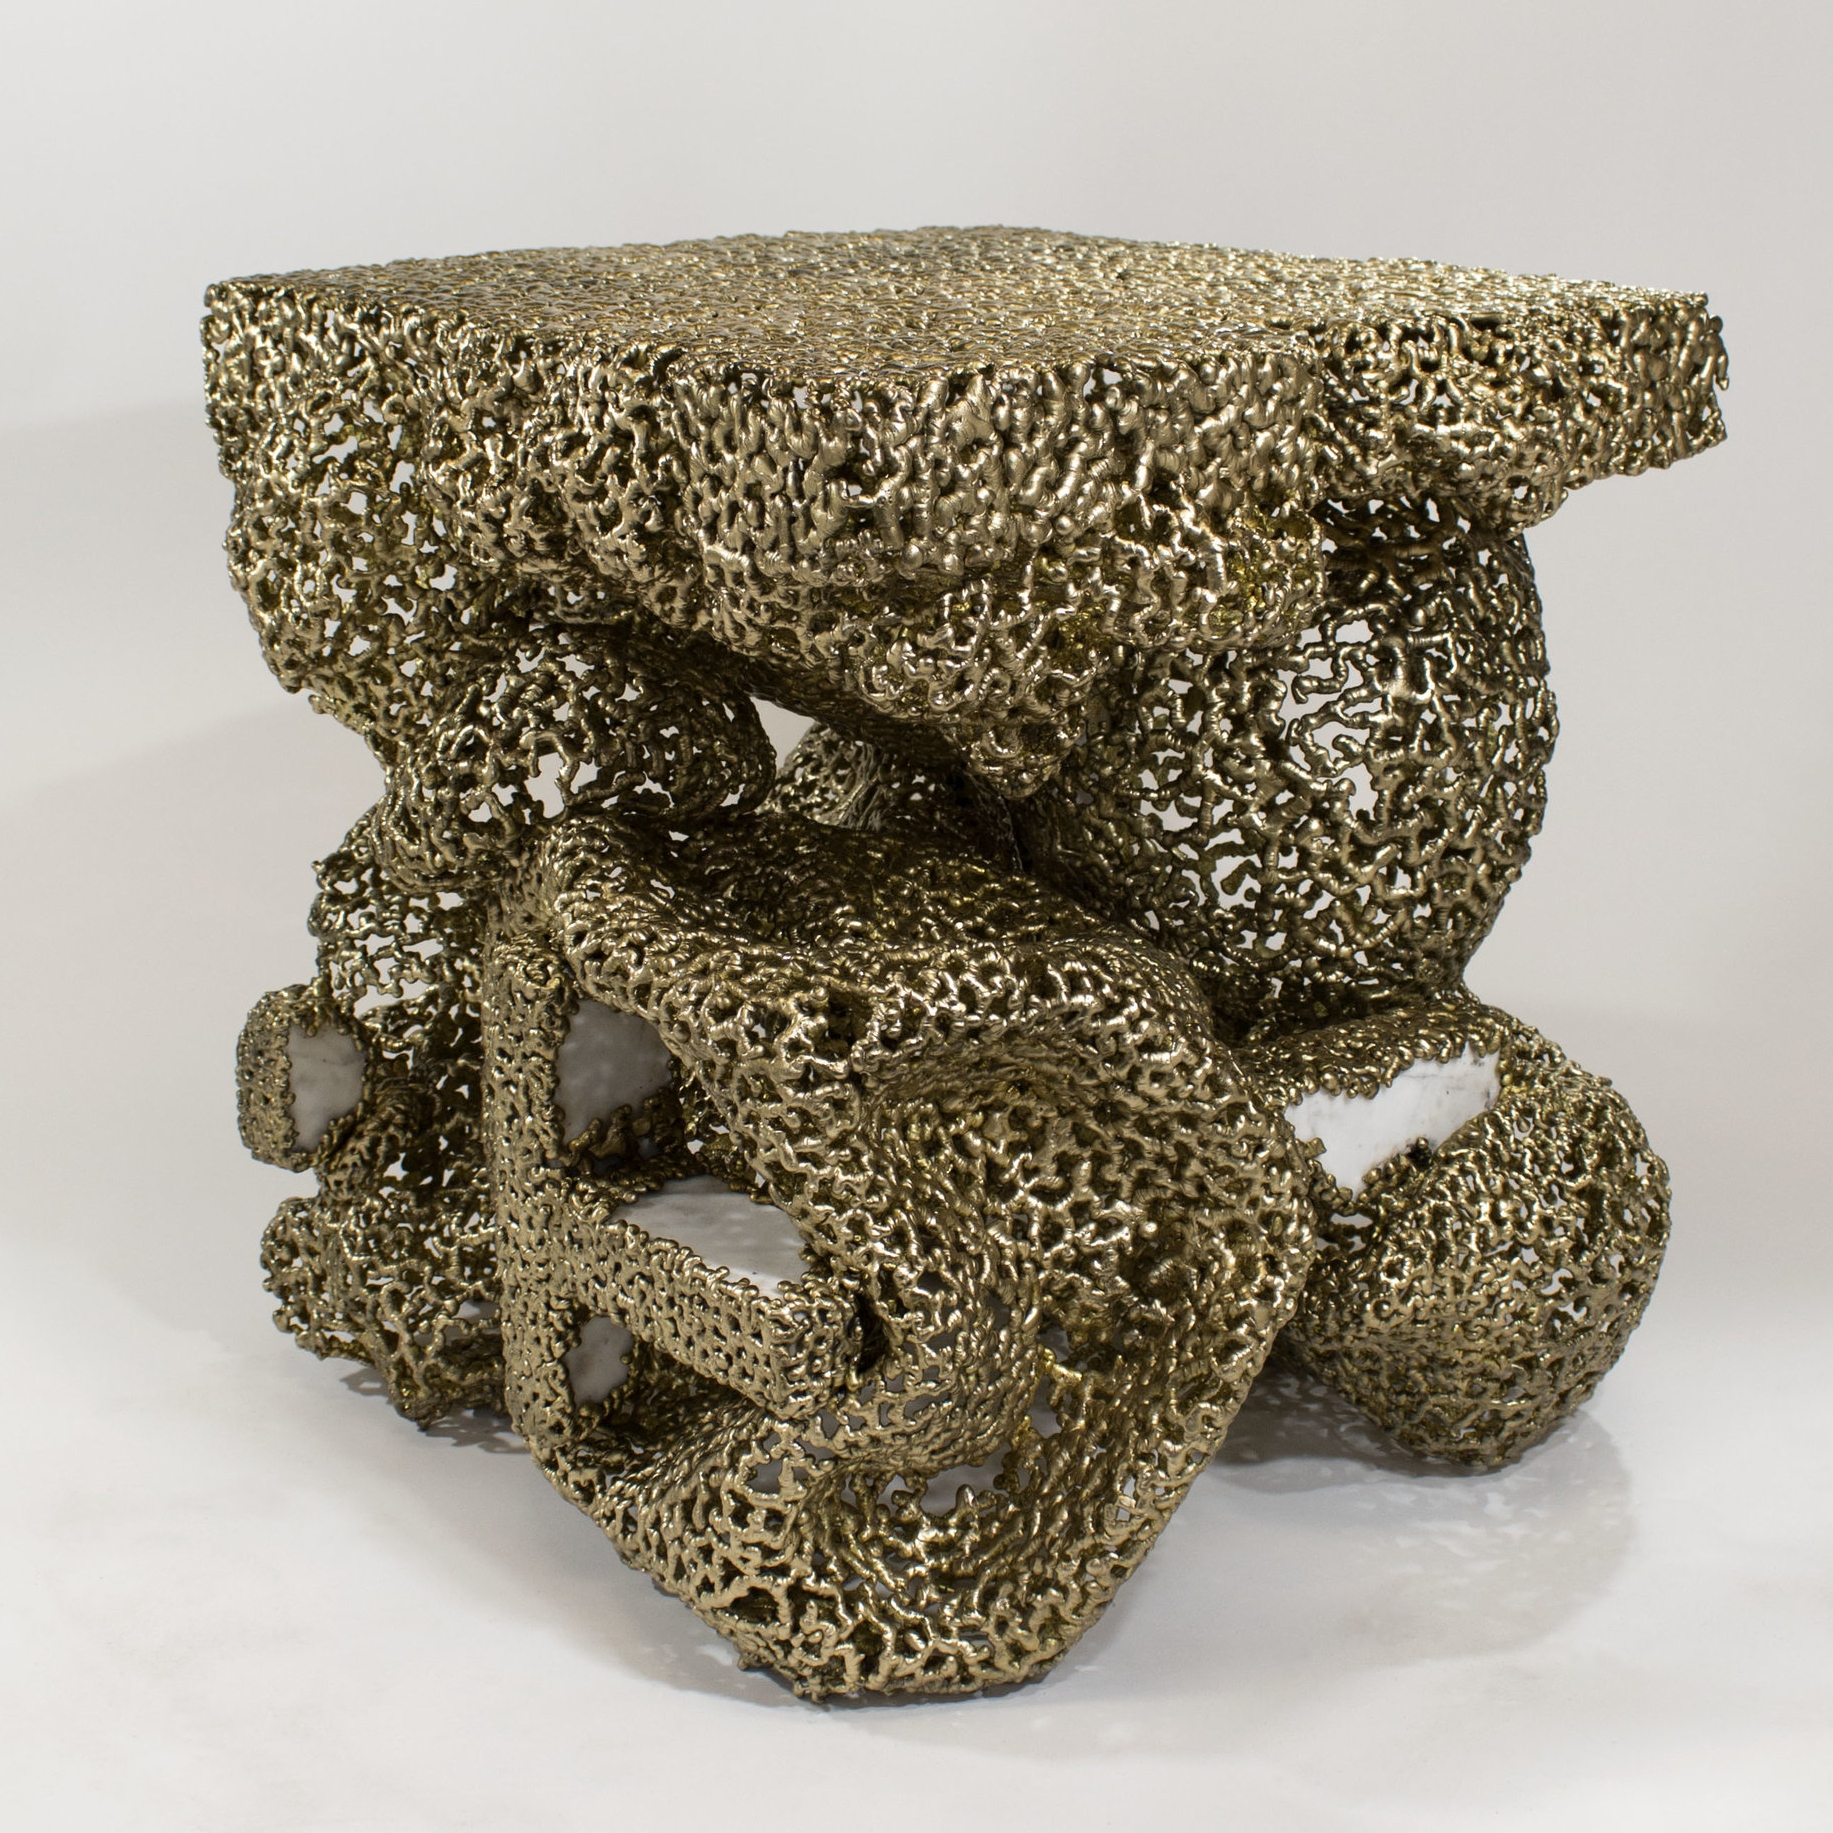 bronzed marble end table, 2016